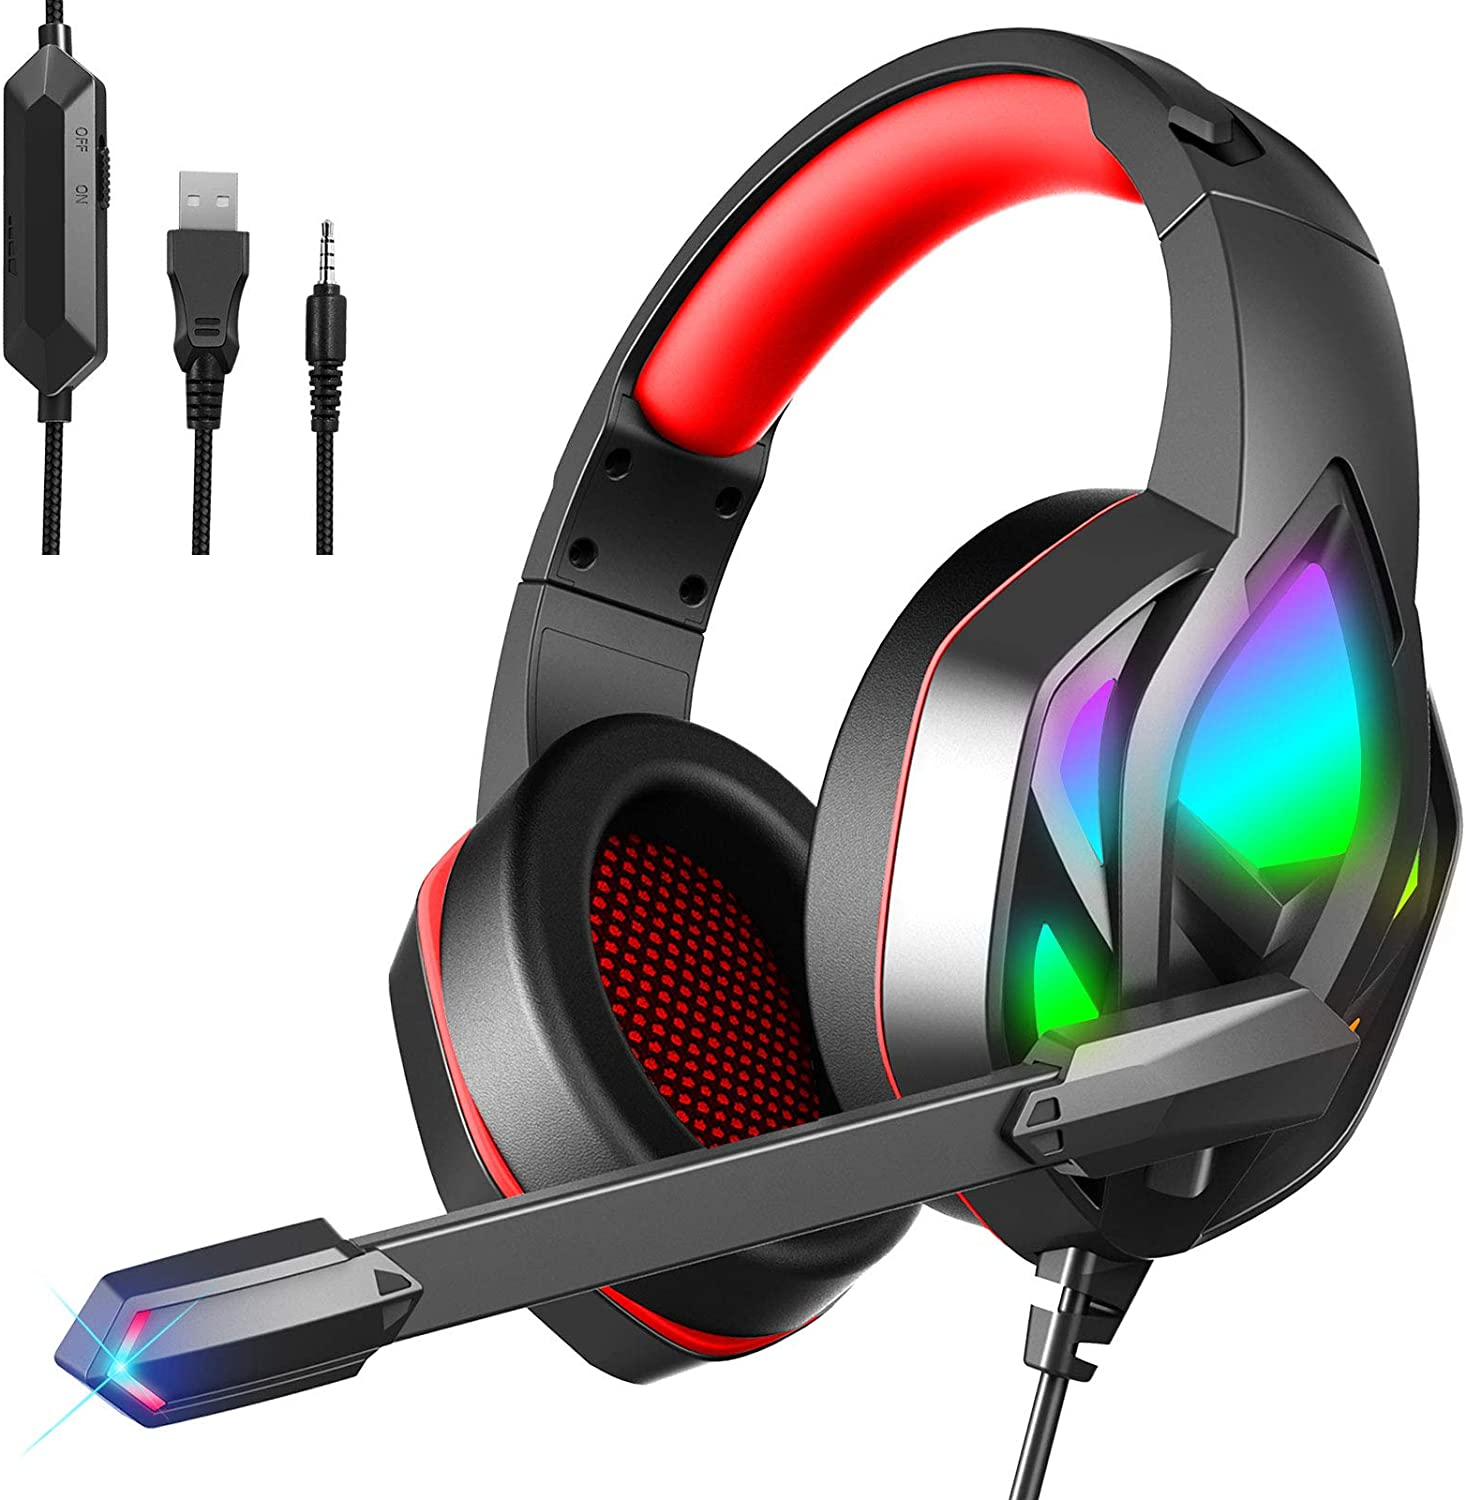 MuGo Gaming Headset for PC Xbox One, Over Ear Headphones with Color Changing LED Light, Gaming Headphones for PS4 PS5 Laptop Mac, Stereo Mic Surround Sound, 3.5mm Audio Jack, Foam Ear Pads, Black/Red: Electronics